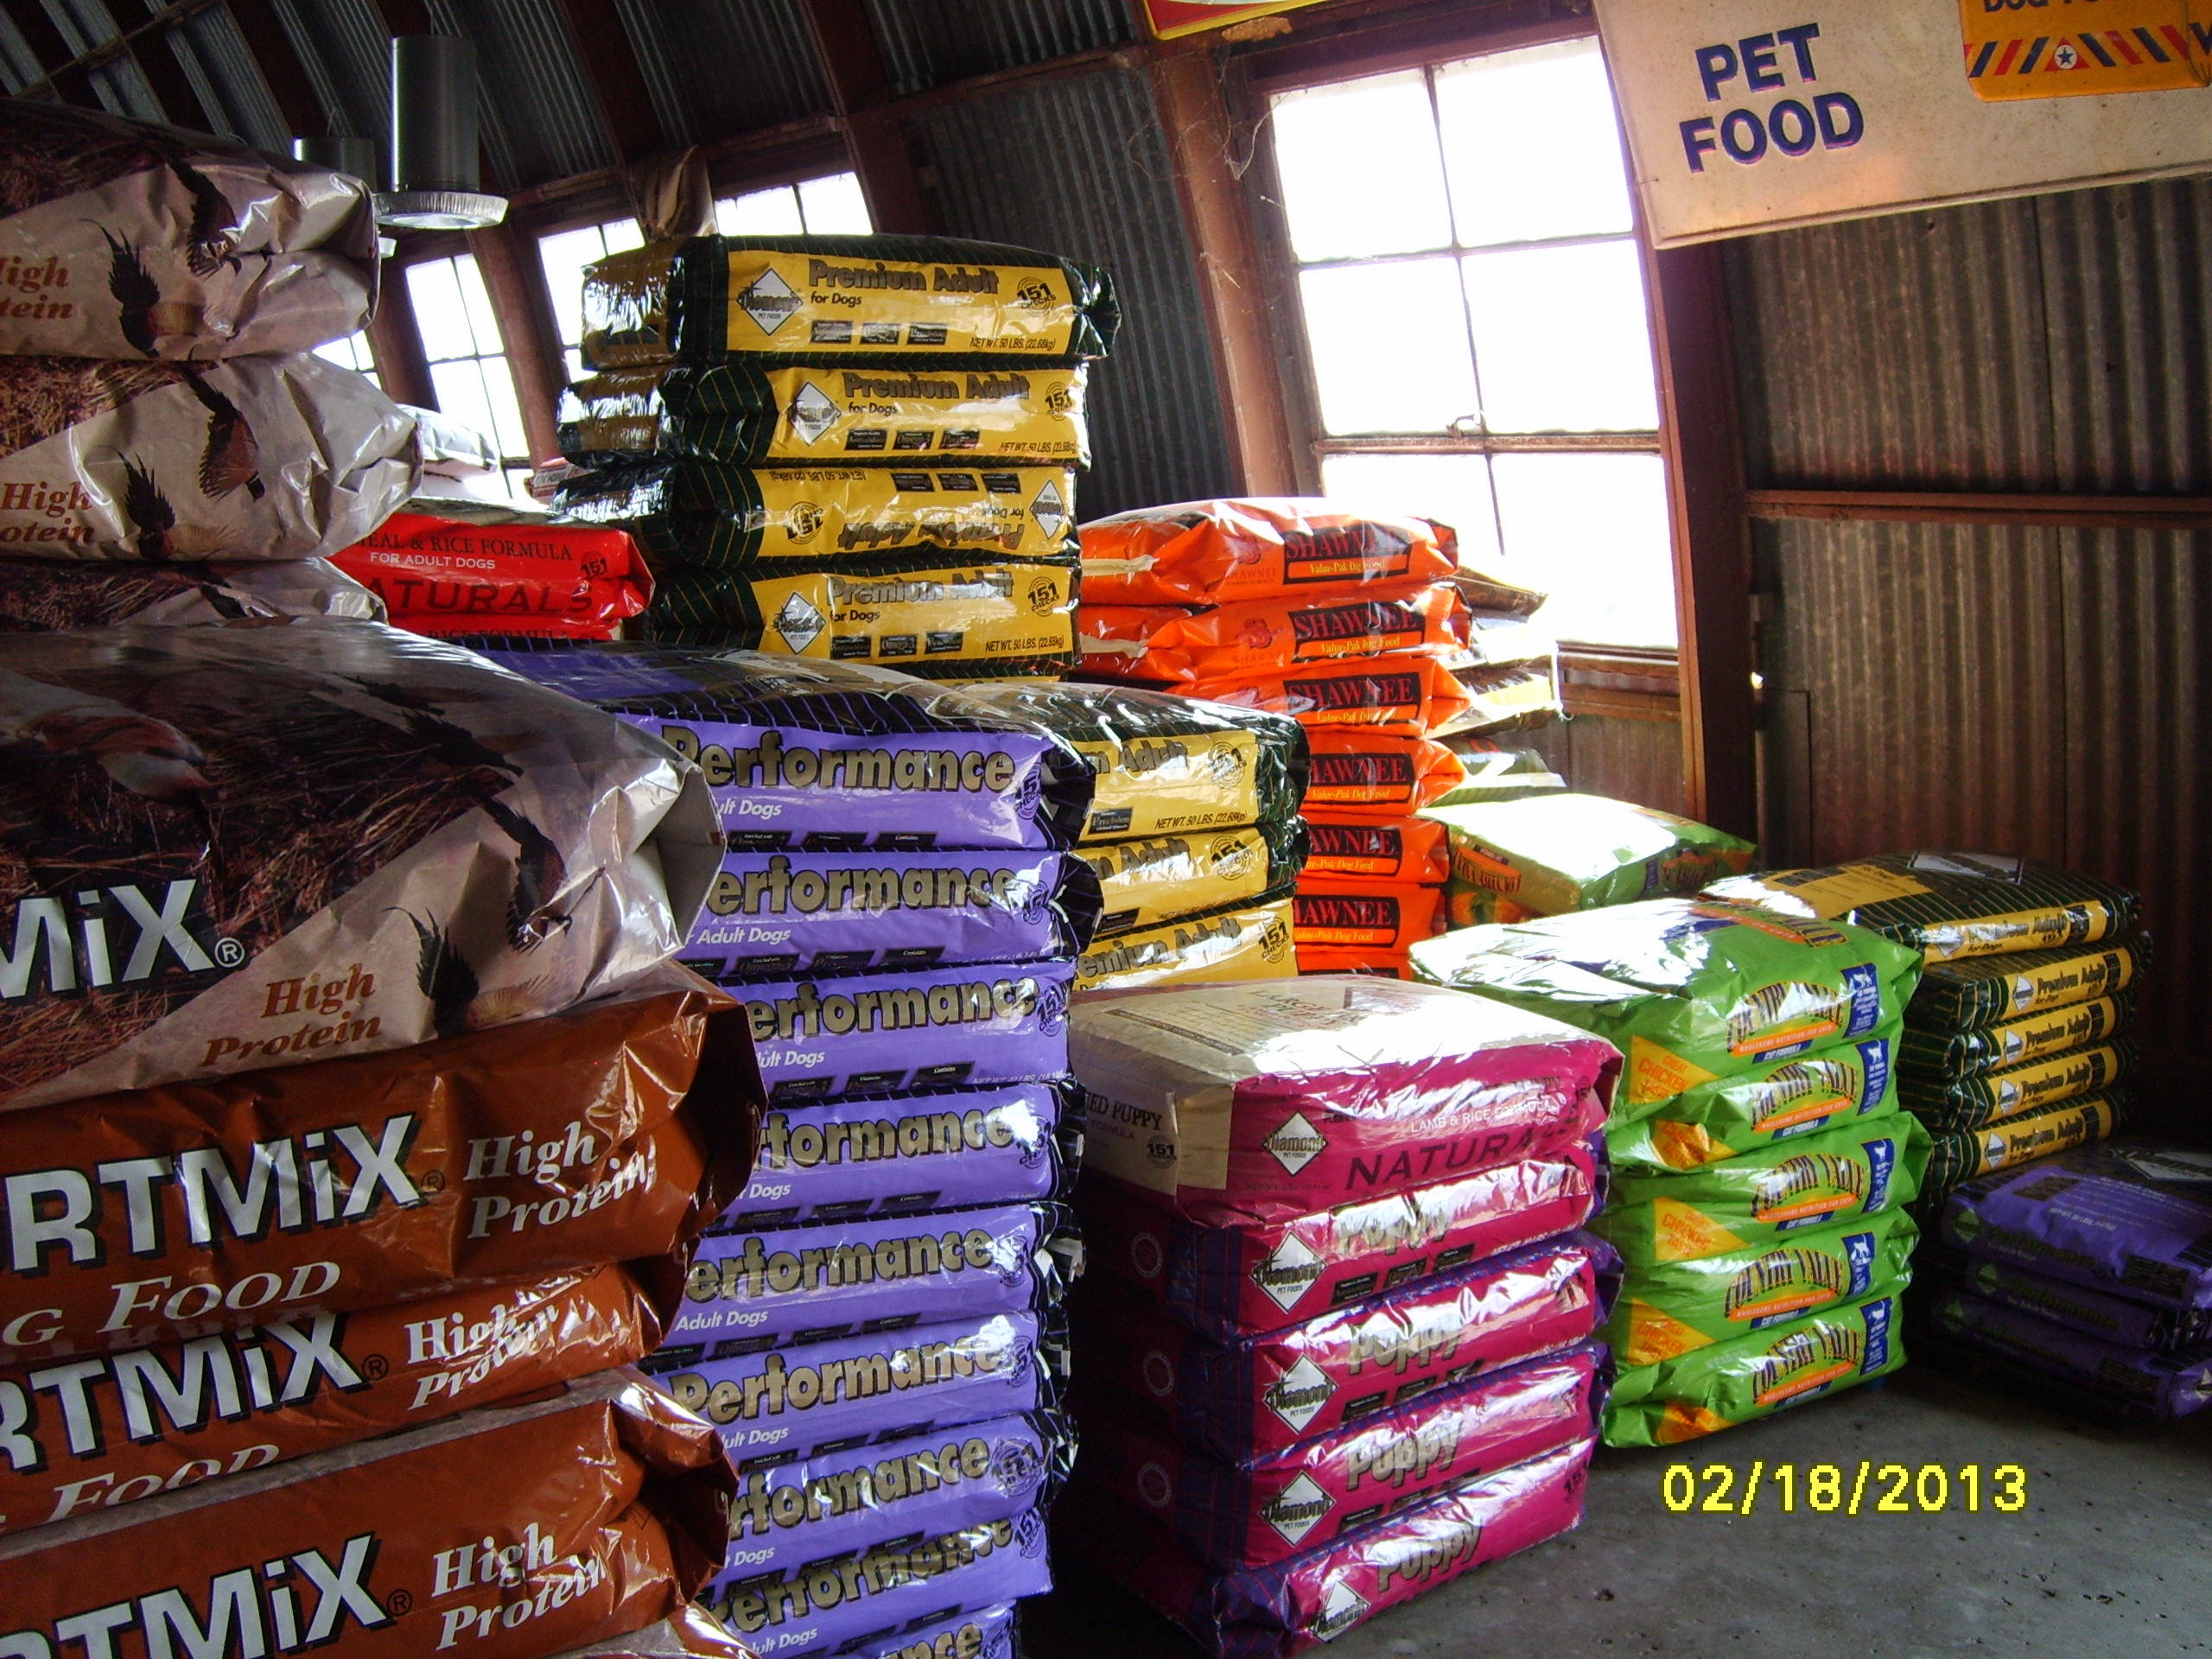 pet foods collin county feed and seed store. Black Bedroom Furniture Sets. Home Design Ideas